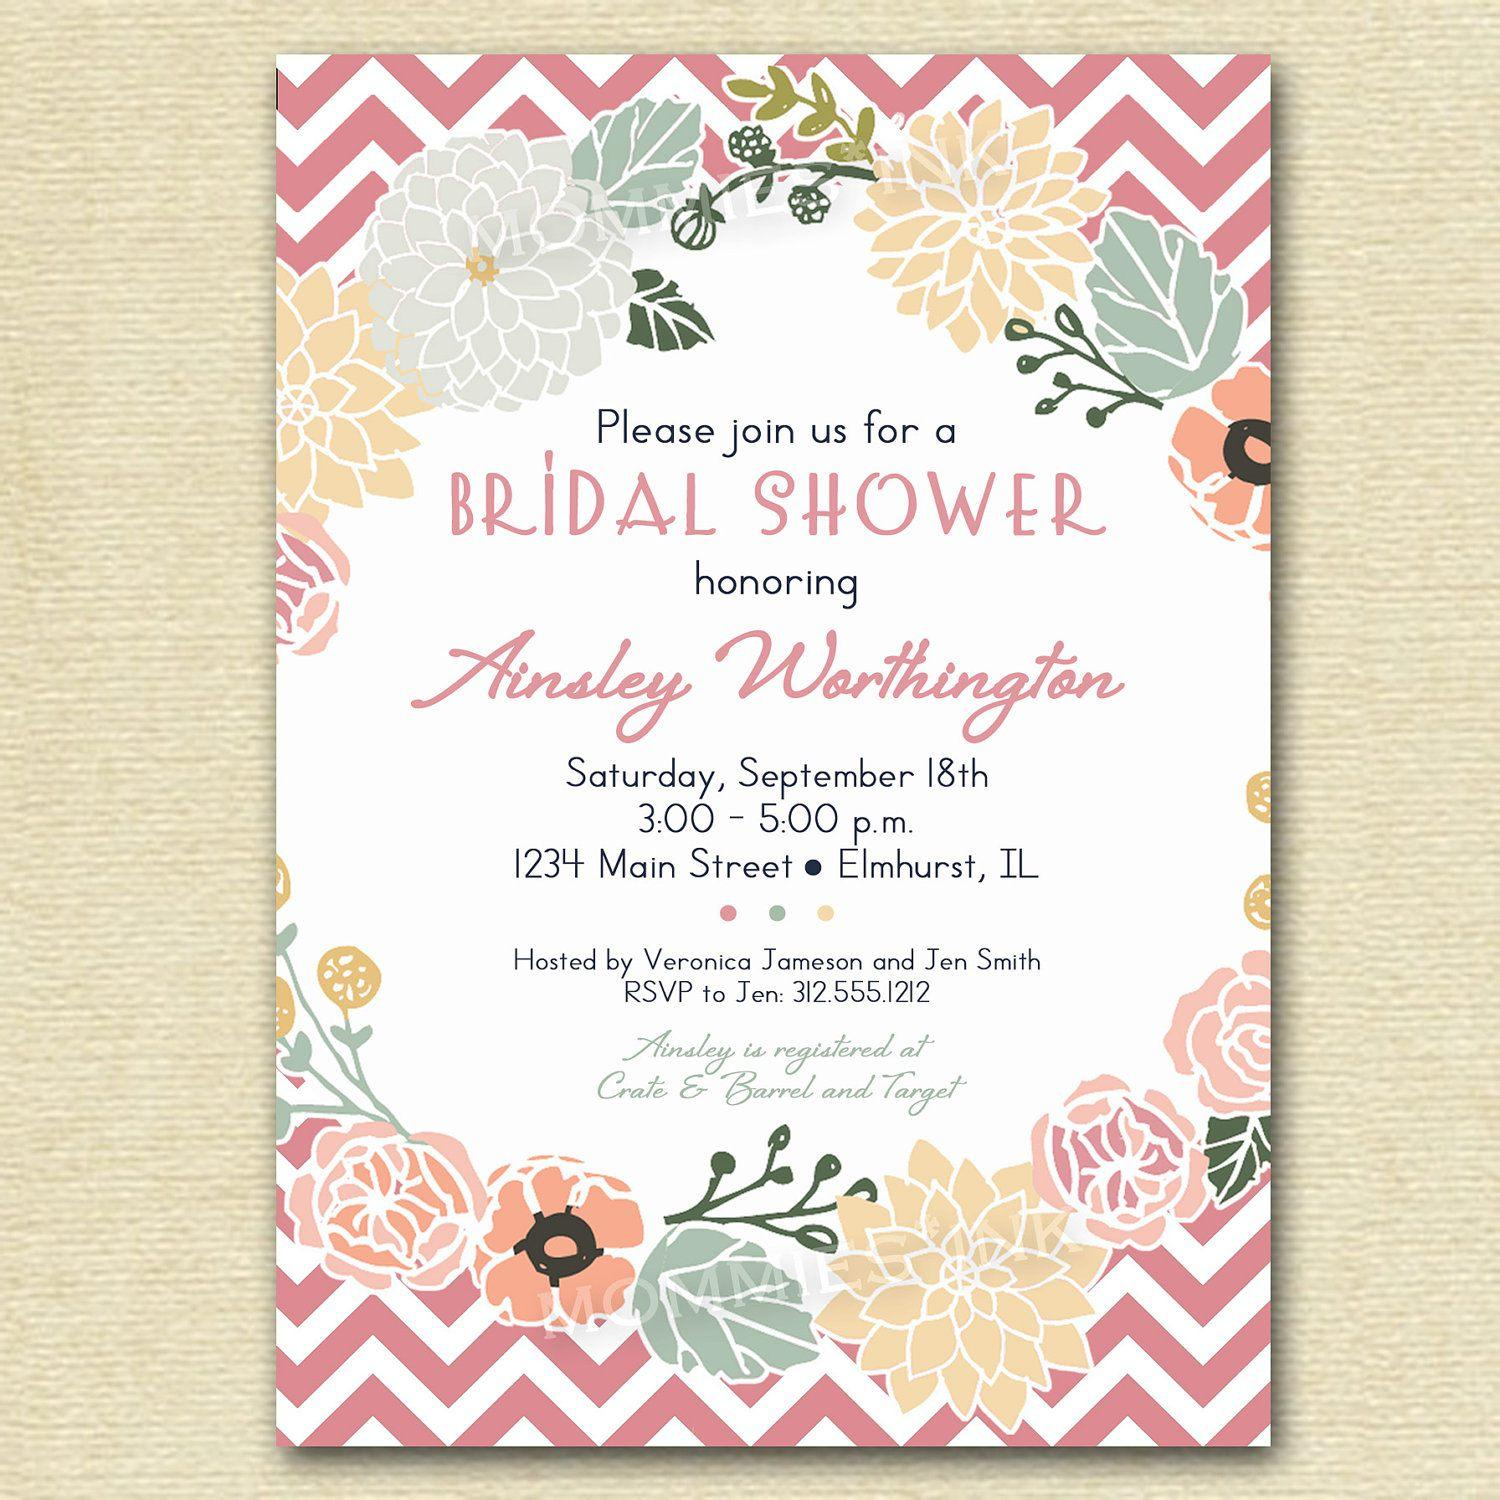 Bridal Shower Party Invitation Templates